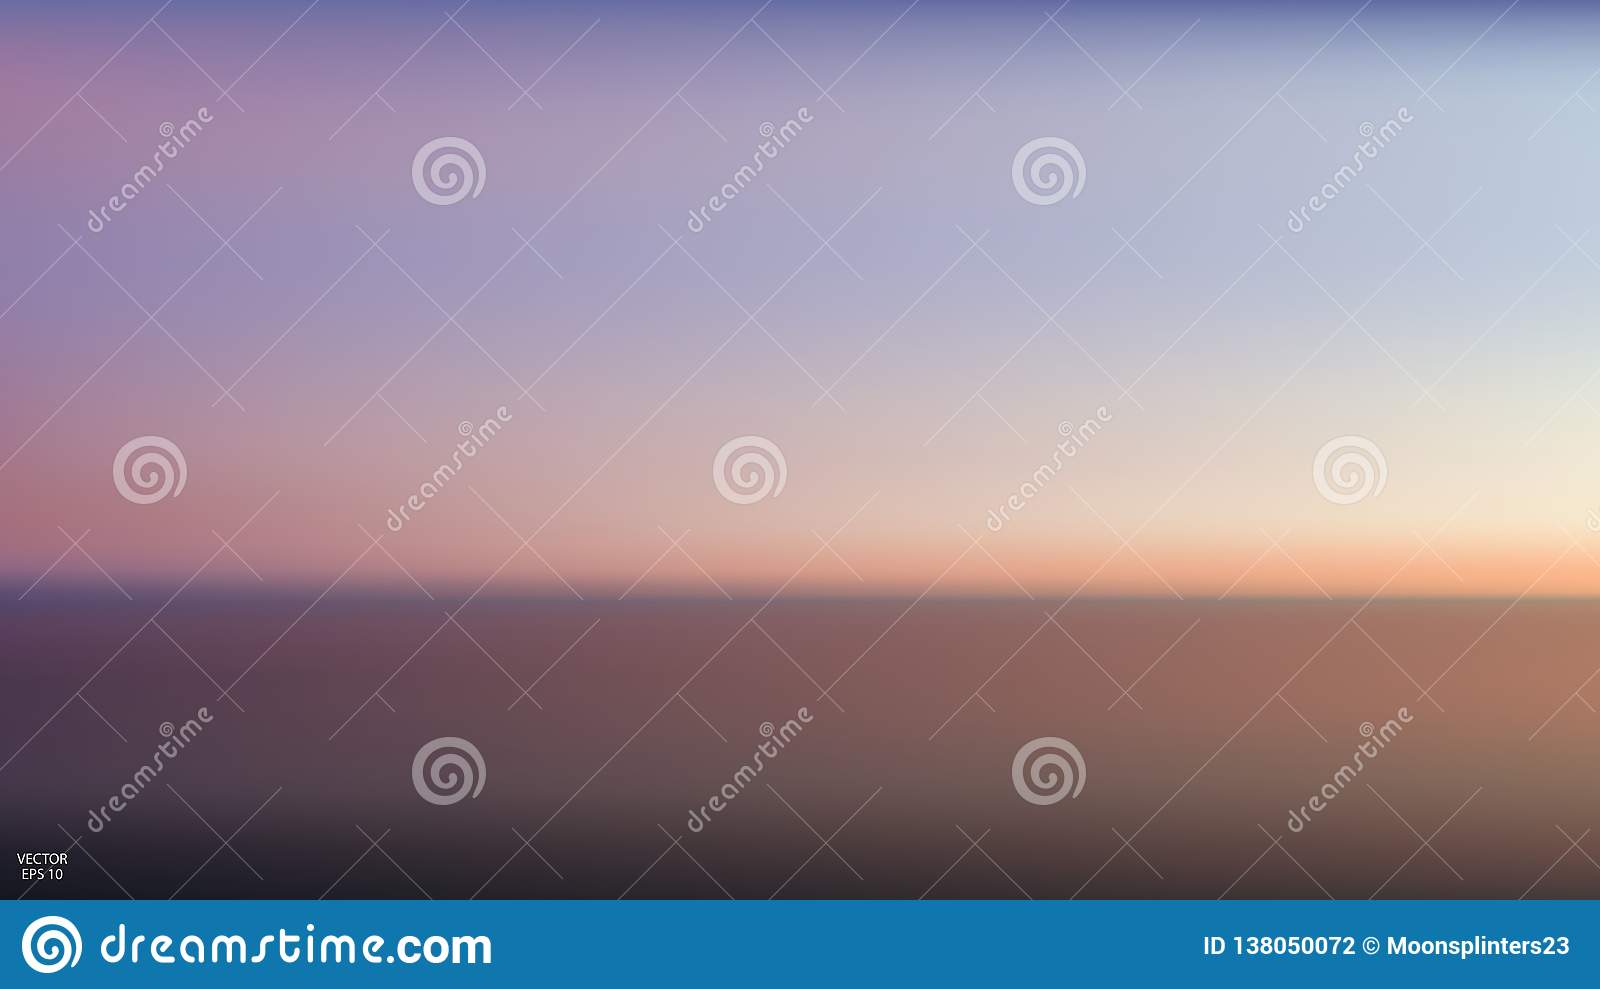 Abstract aerial panoramic view of sunset over ocean. Nothing but sky and water. Beautiful serene scene. Vector illustration